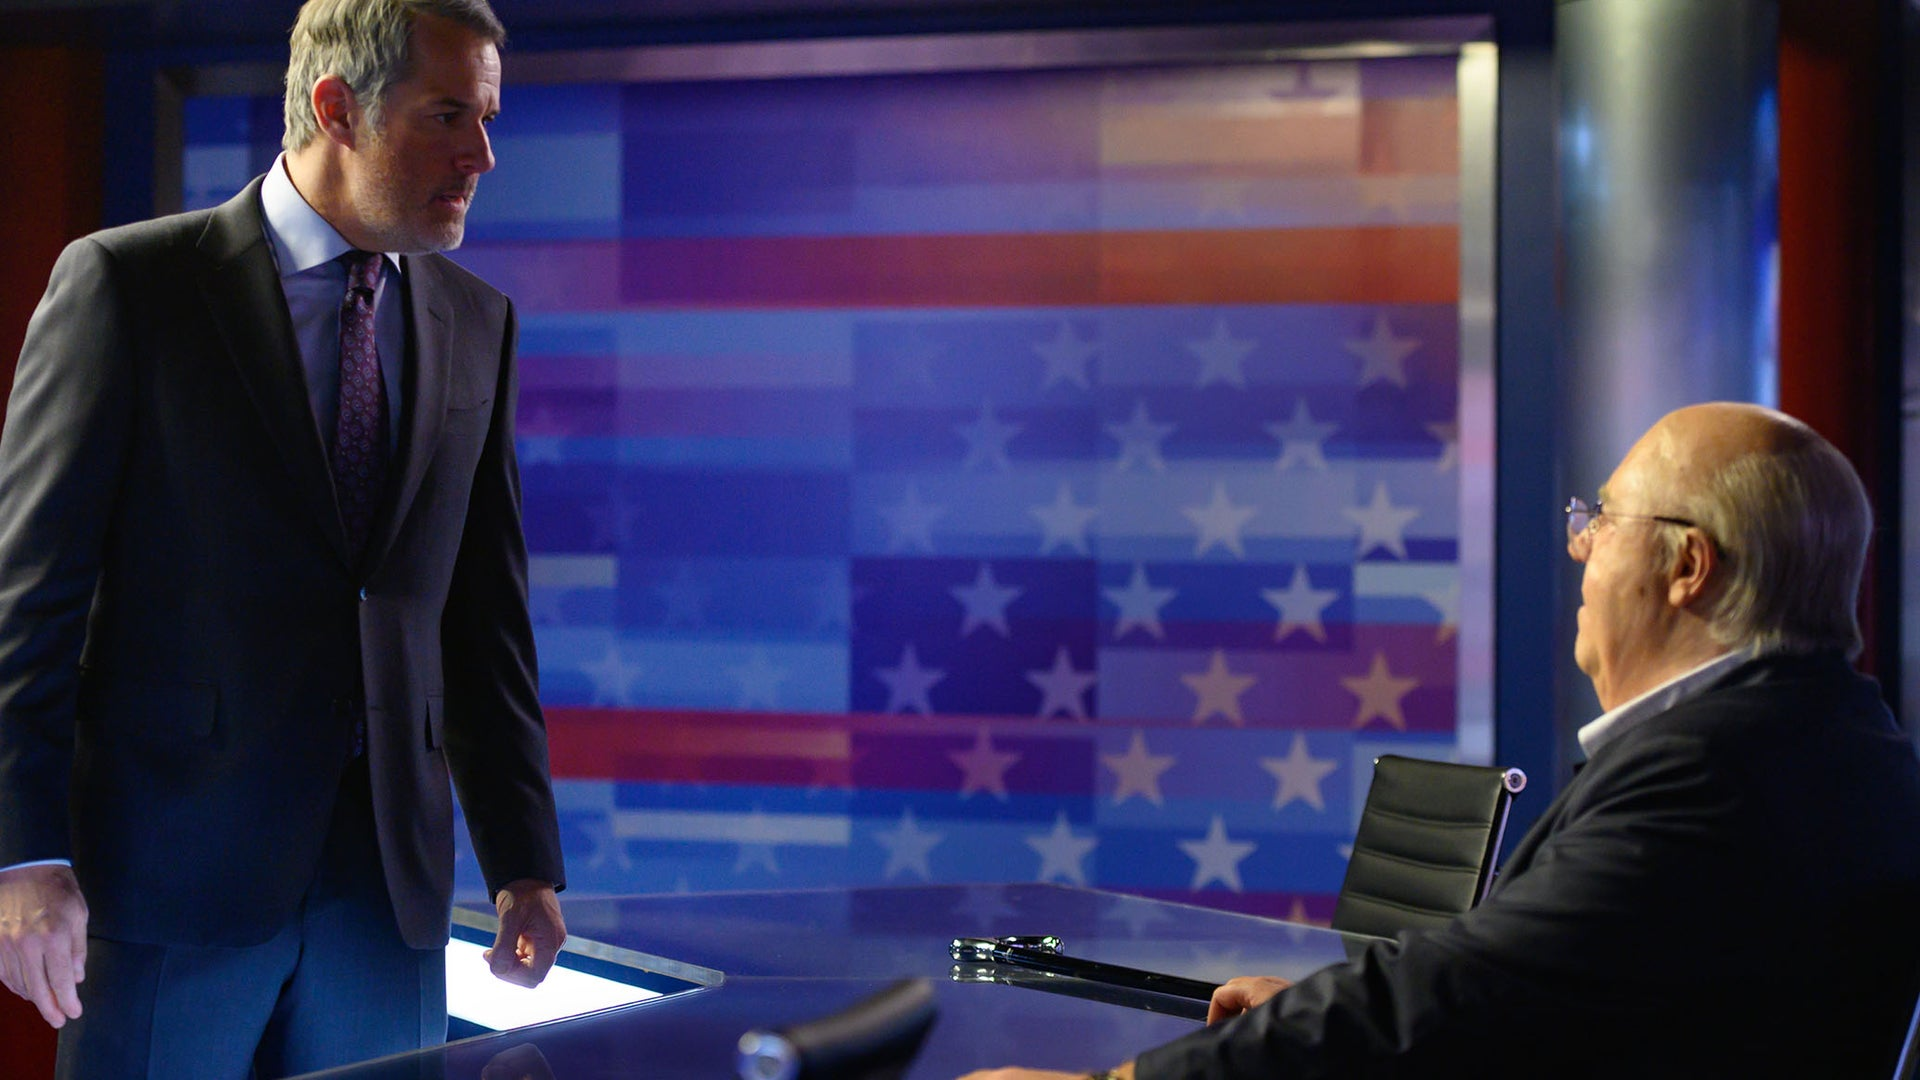 Josh Stamberg as Bill Shine and Russell Crowe as Roger Ailes in The Loudest Voice